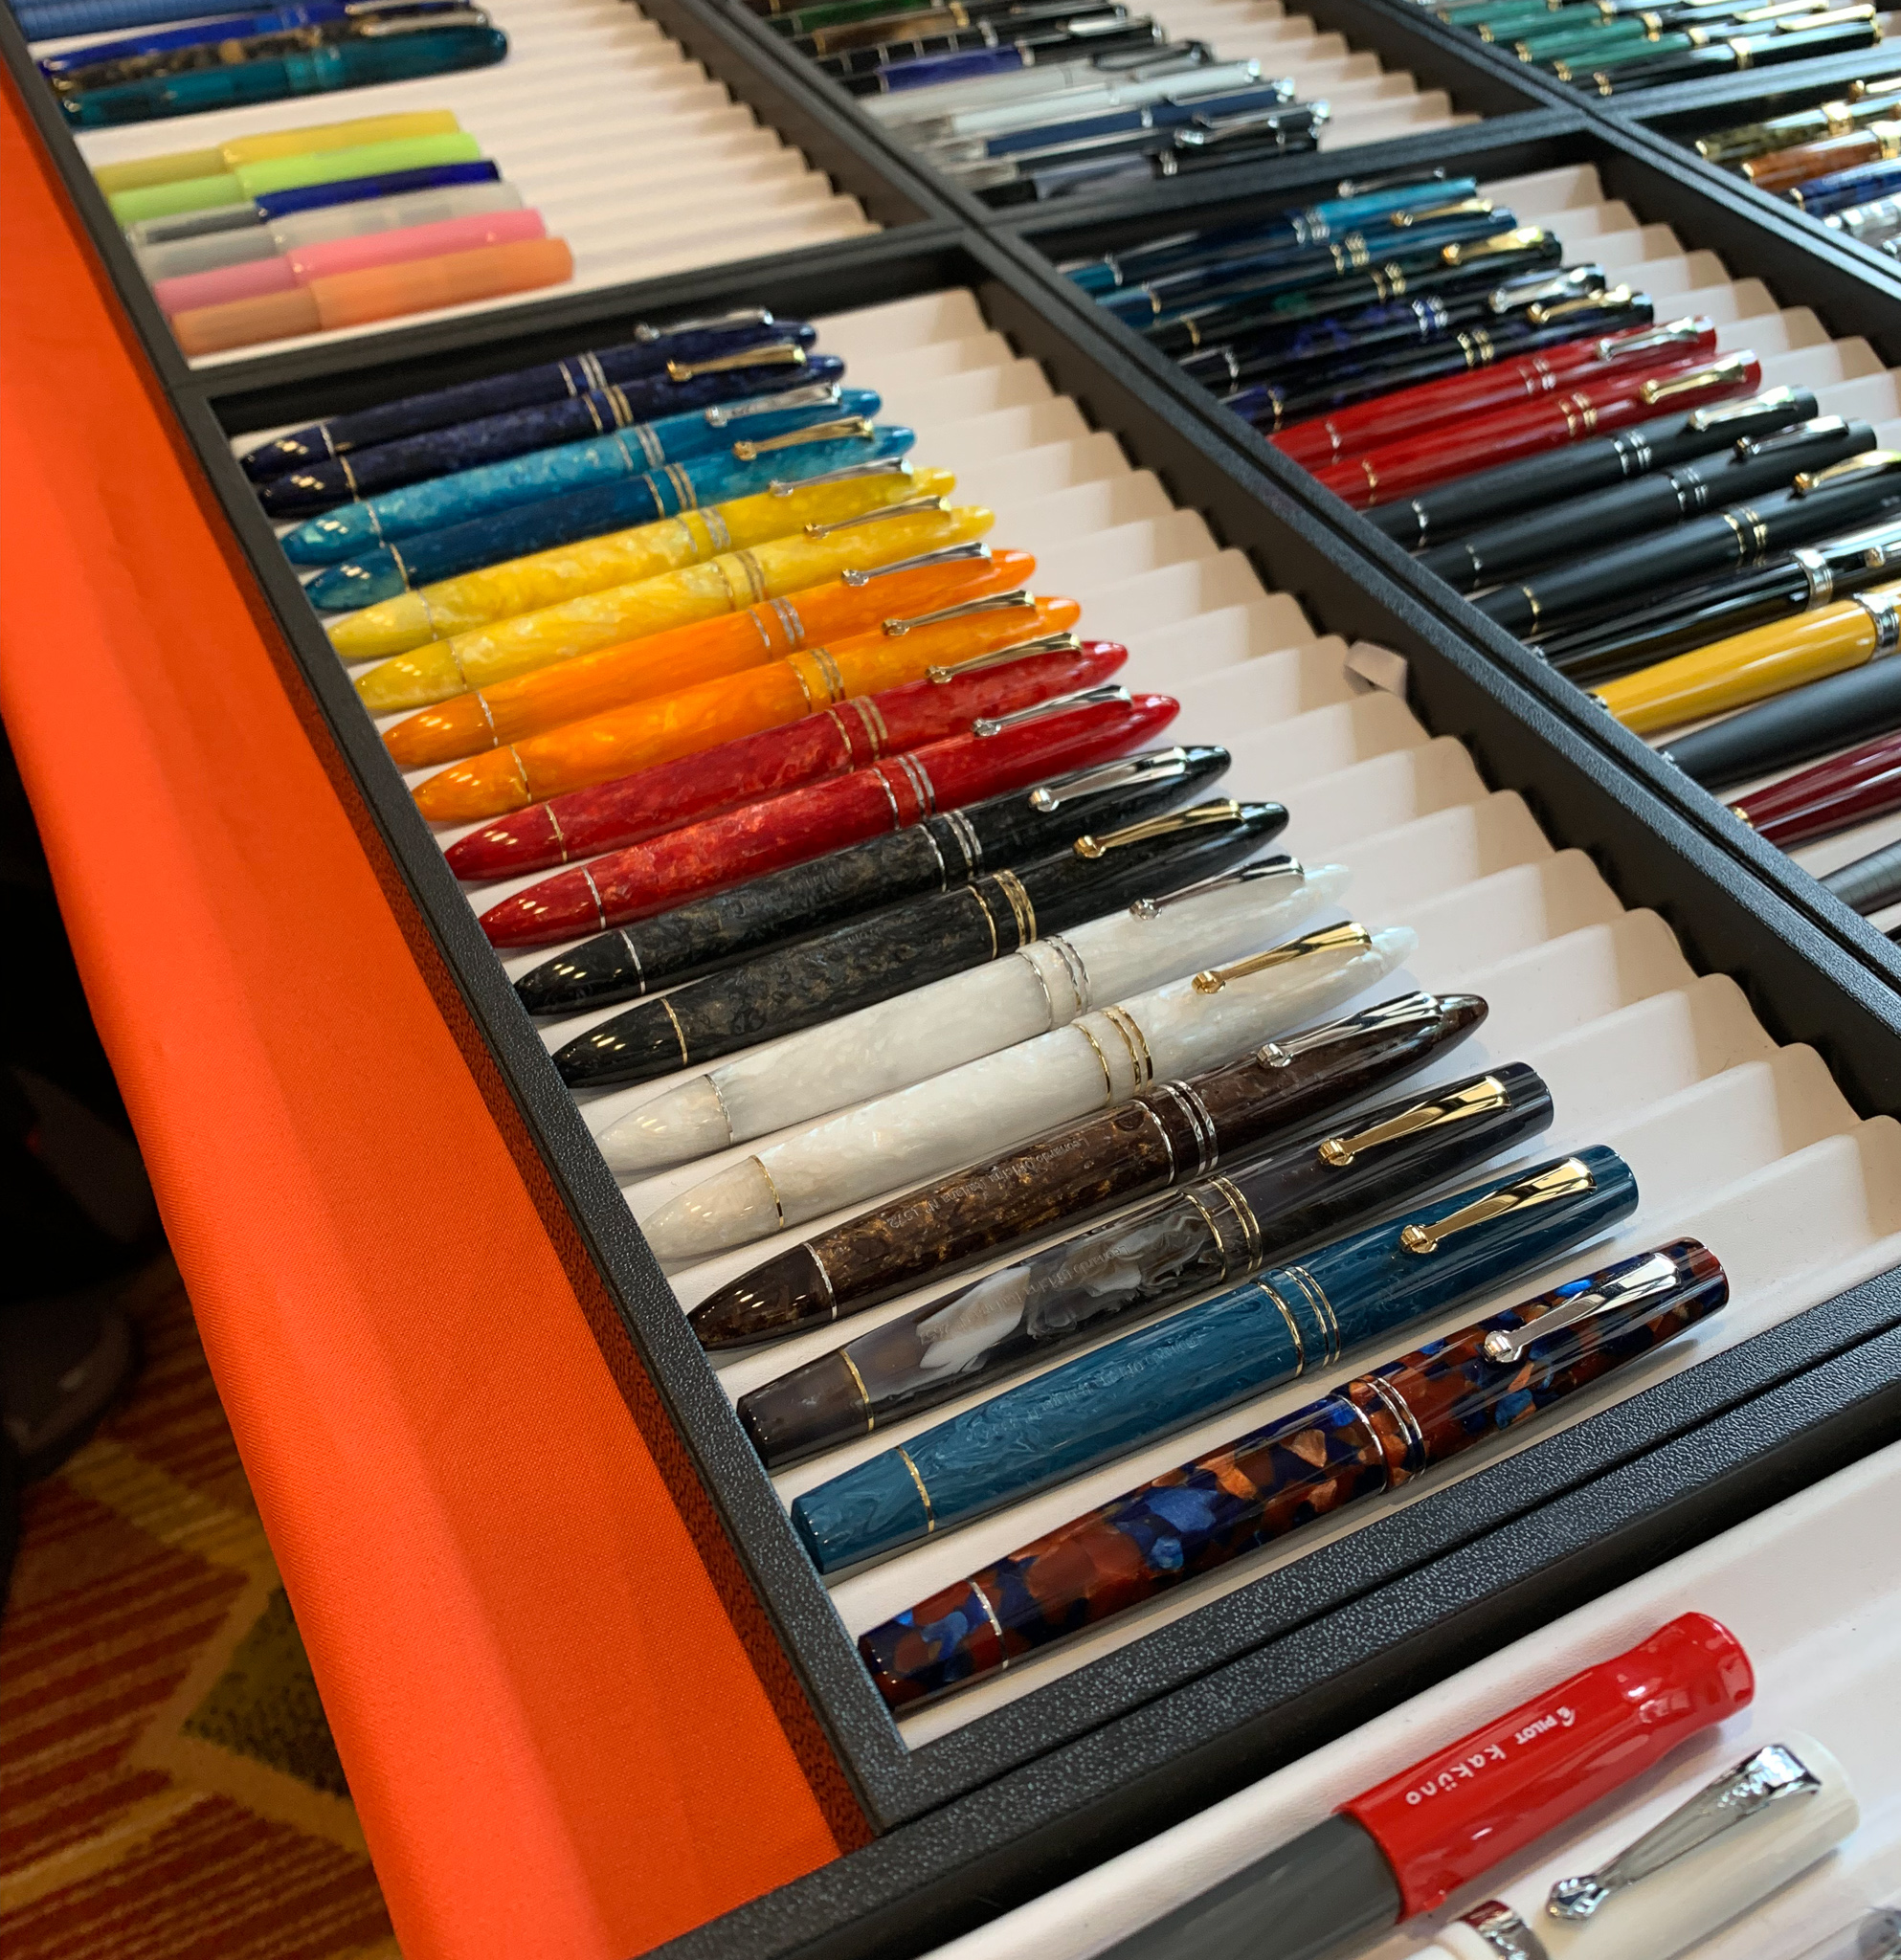 Dan Smith at  The Nibsmith  brought the entire spectrum of Leonardo pens, as well as Sailor, Visconti, and other brands.